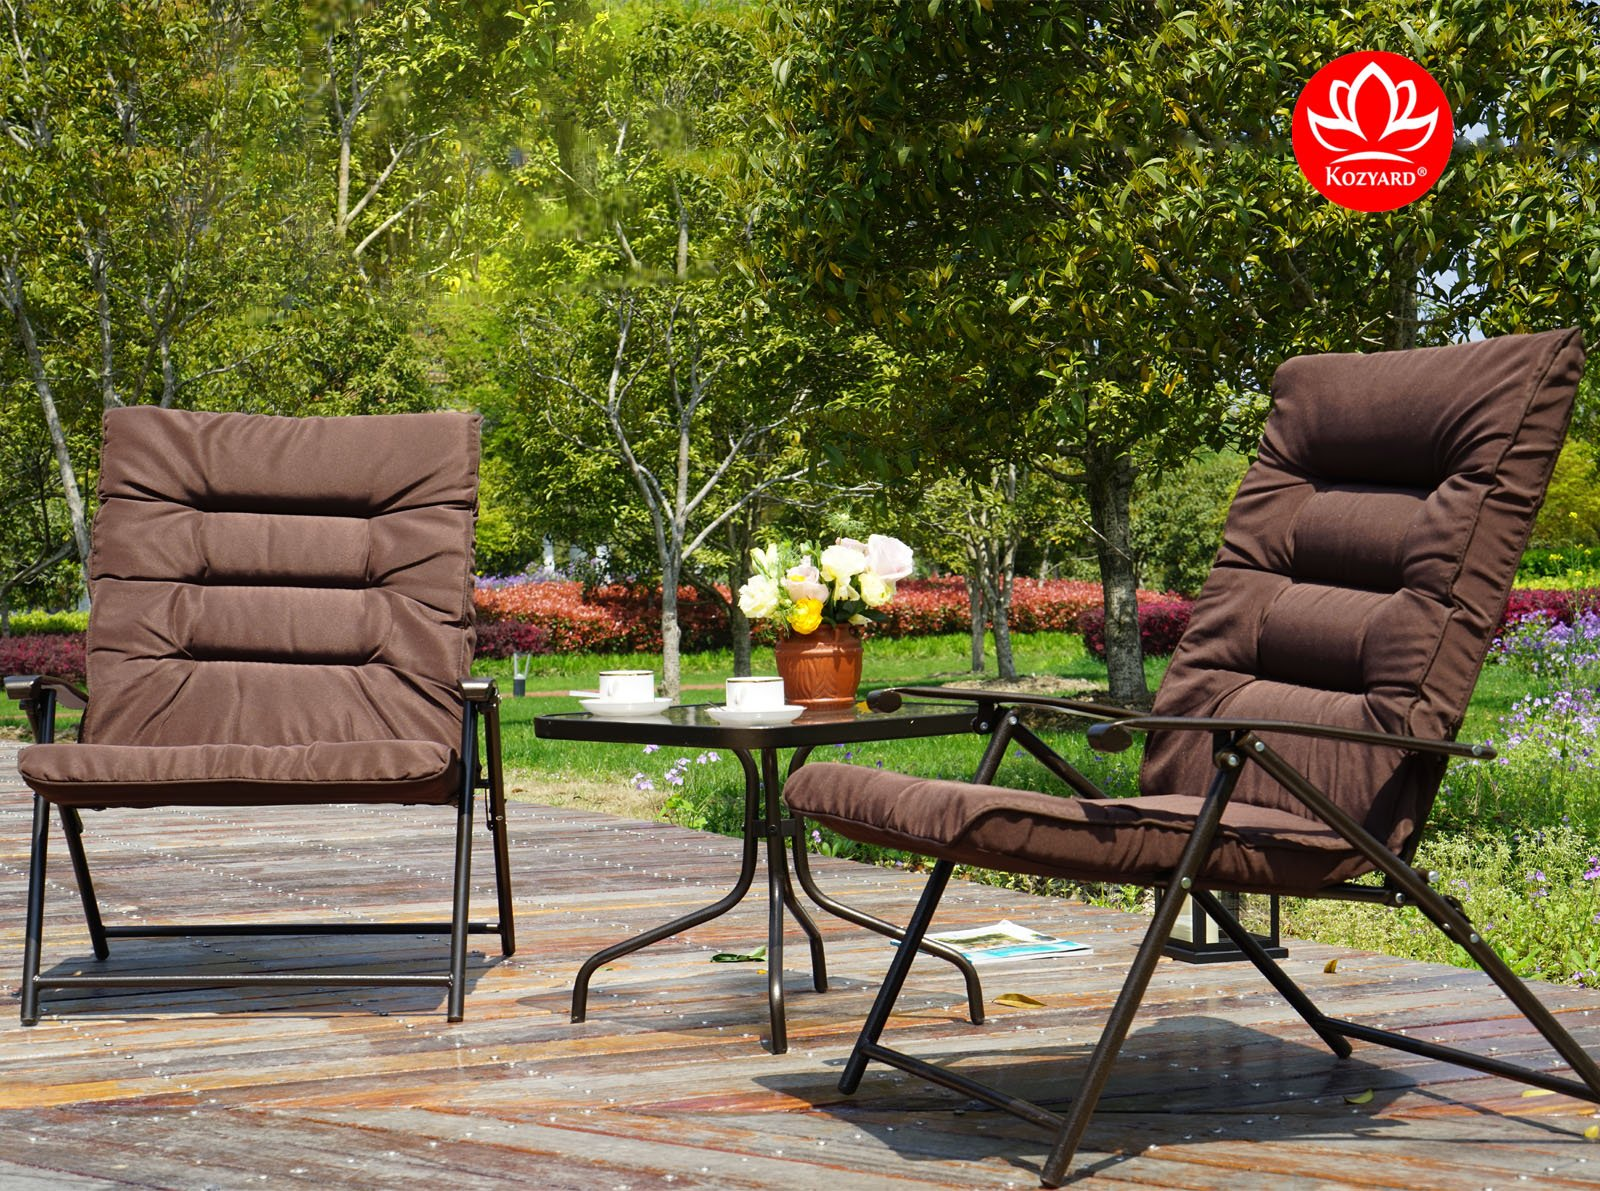 Kozyard Elsa 3 Pieces Outdoor Patio Furniture Padded Folding Sets for Yard, Patio, Deck or Backyard by Kozyard (Image #7)